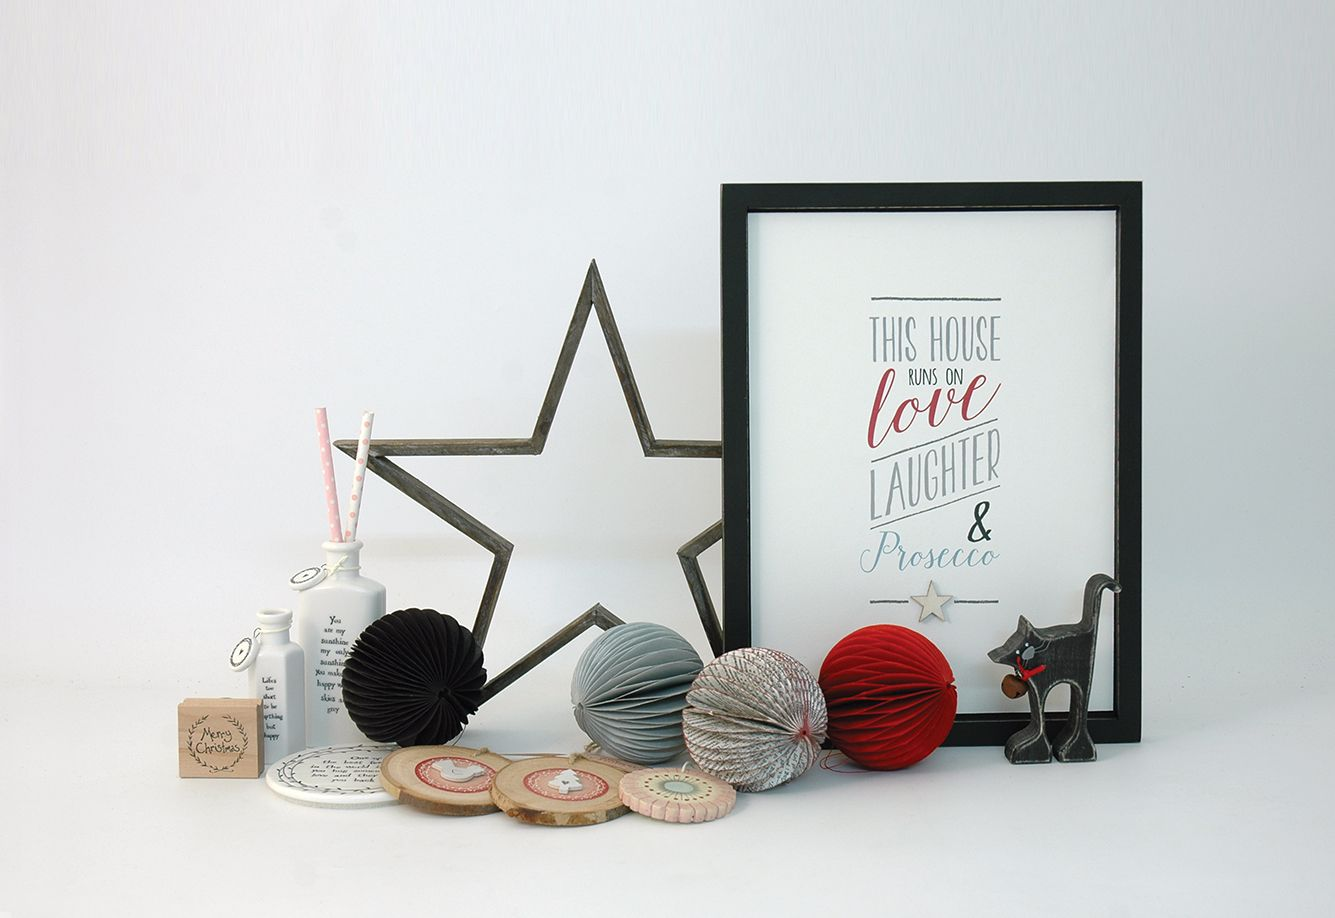 East of India Prosecco Picture (Code 4574) Large Grey Cut Out Star (Code 528)